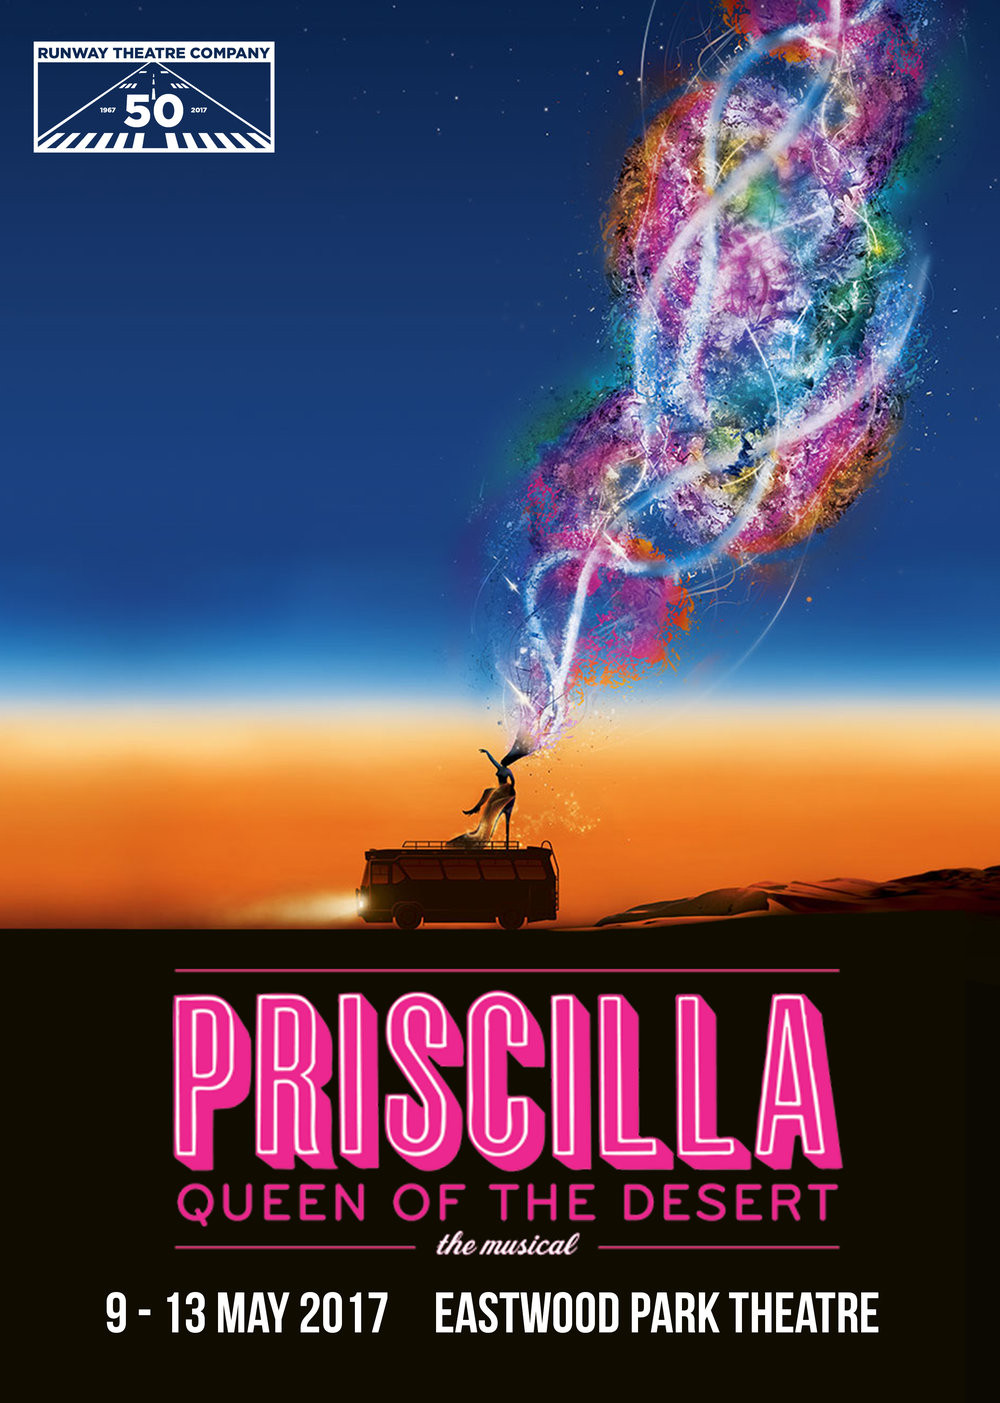 Queen Of The Dessert  Priscilla Queen of the Desert — Runway Theatre pany